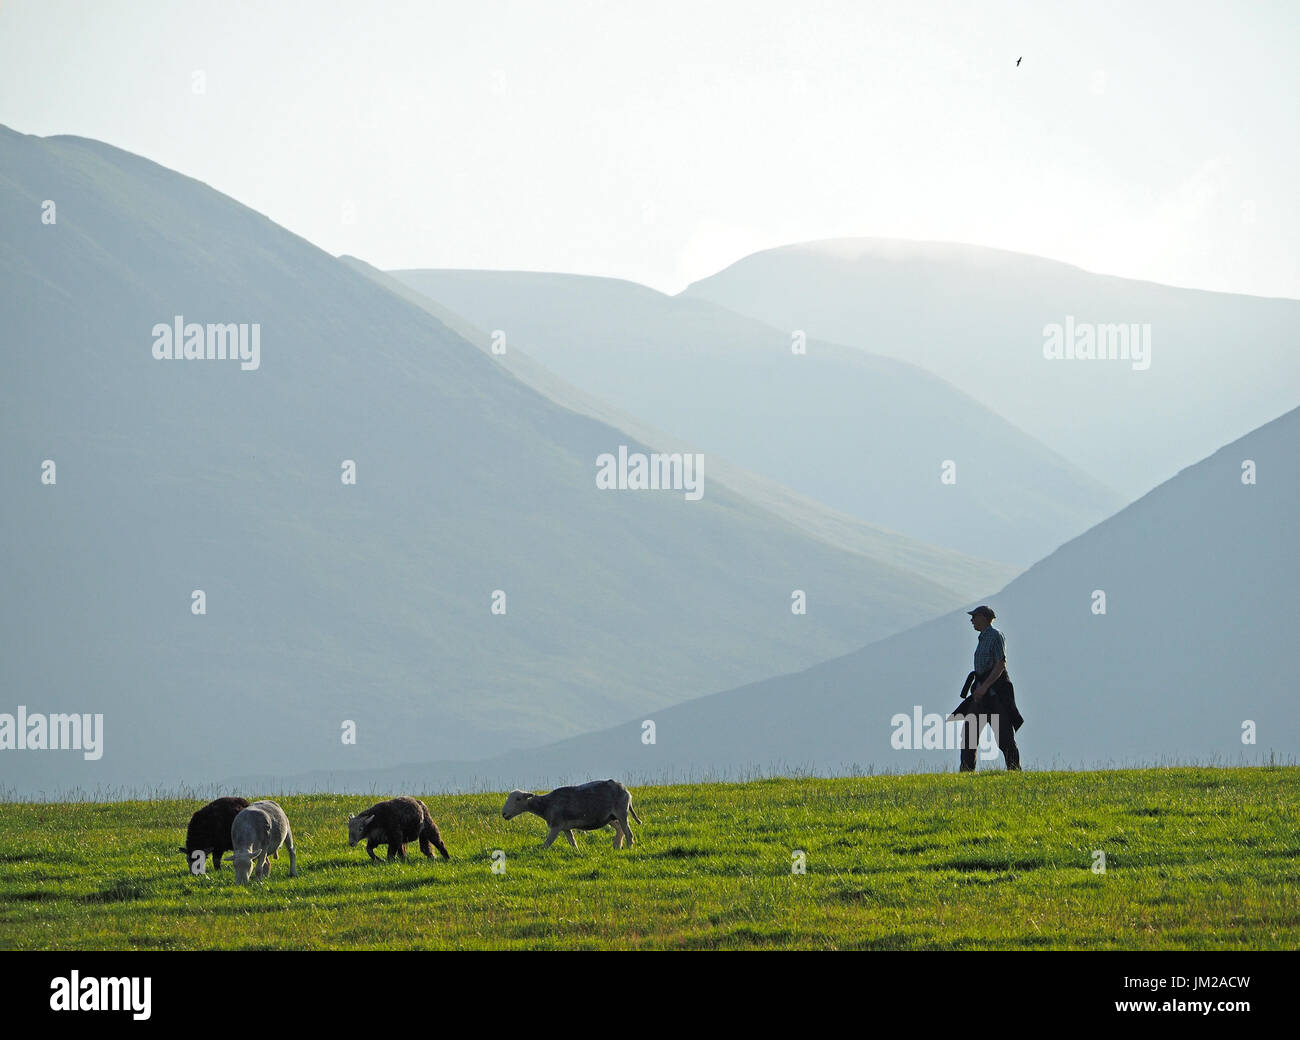 Lake District, UK. 25th July, 2017. A walker passes Herdwick sheep grazing in front of receding hills in evening - Stock Image